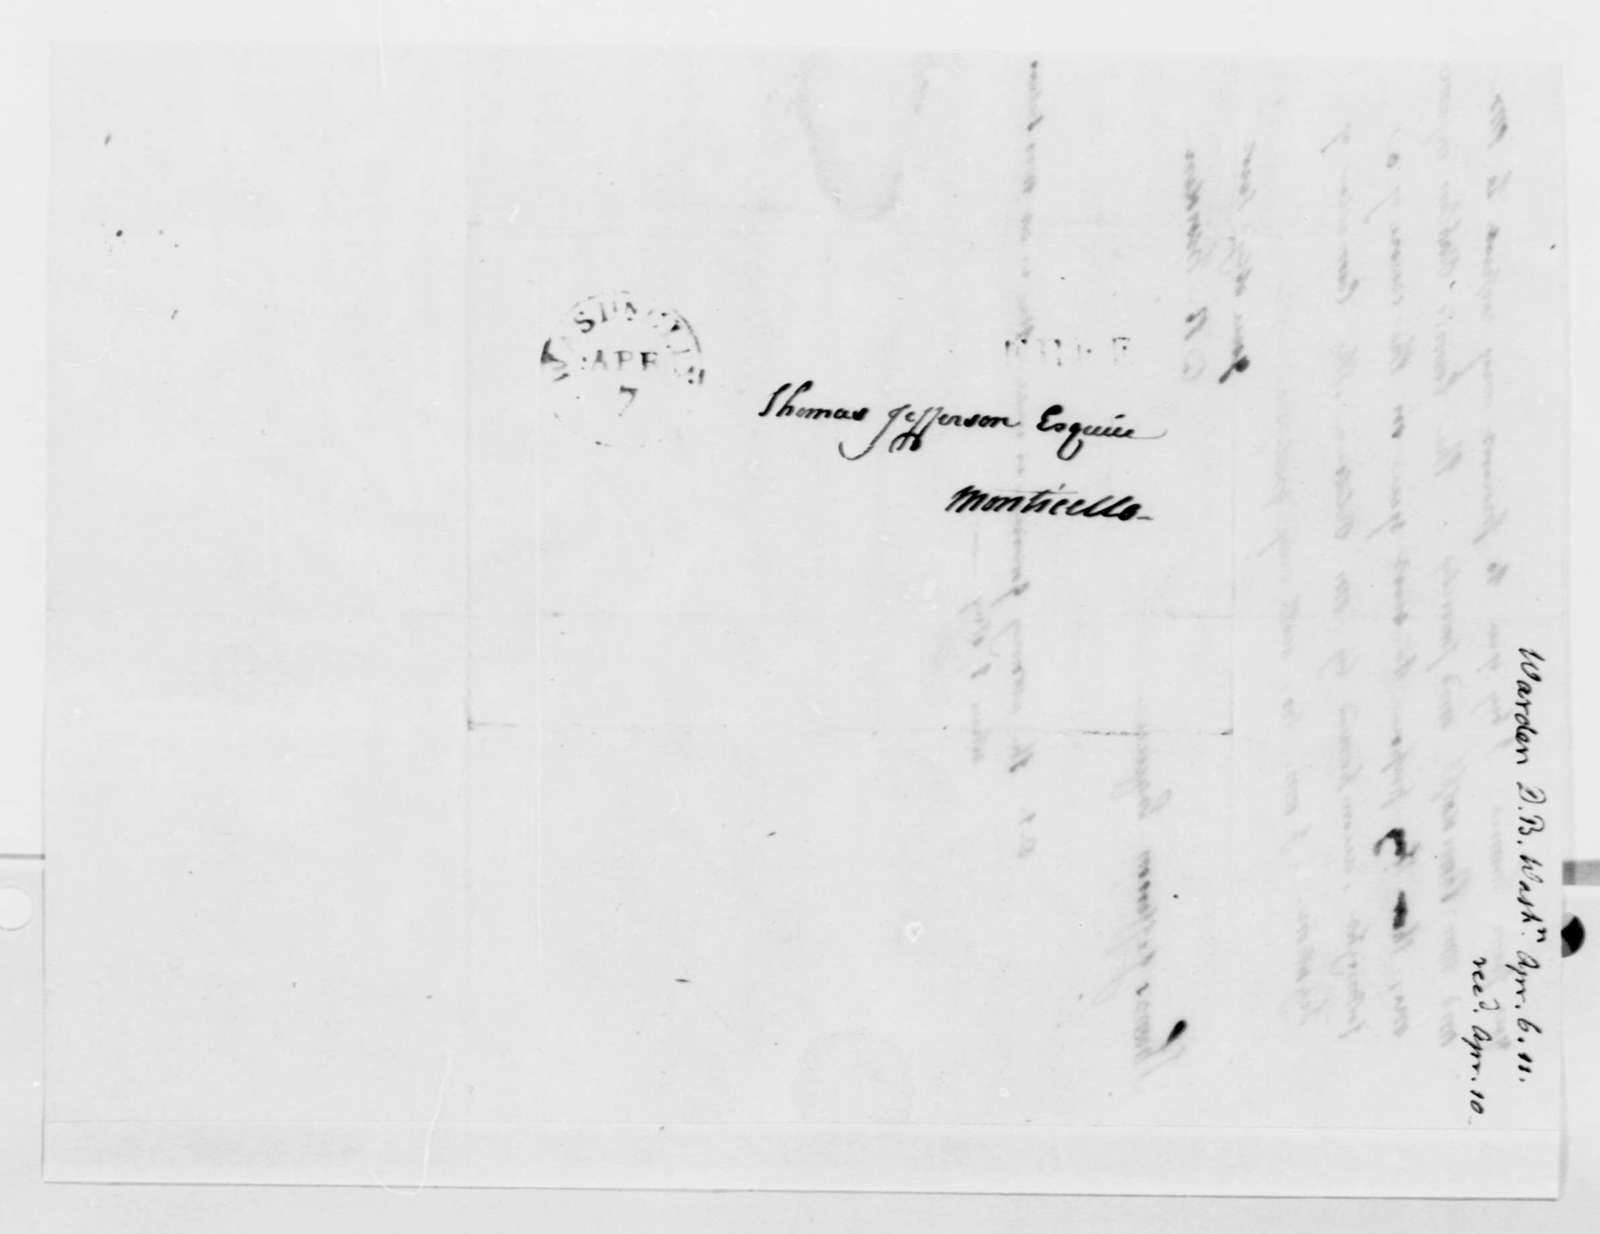 David B. Warden to Thomas Jefferson, April 6, 1811